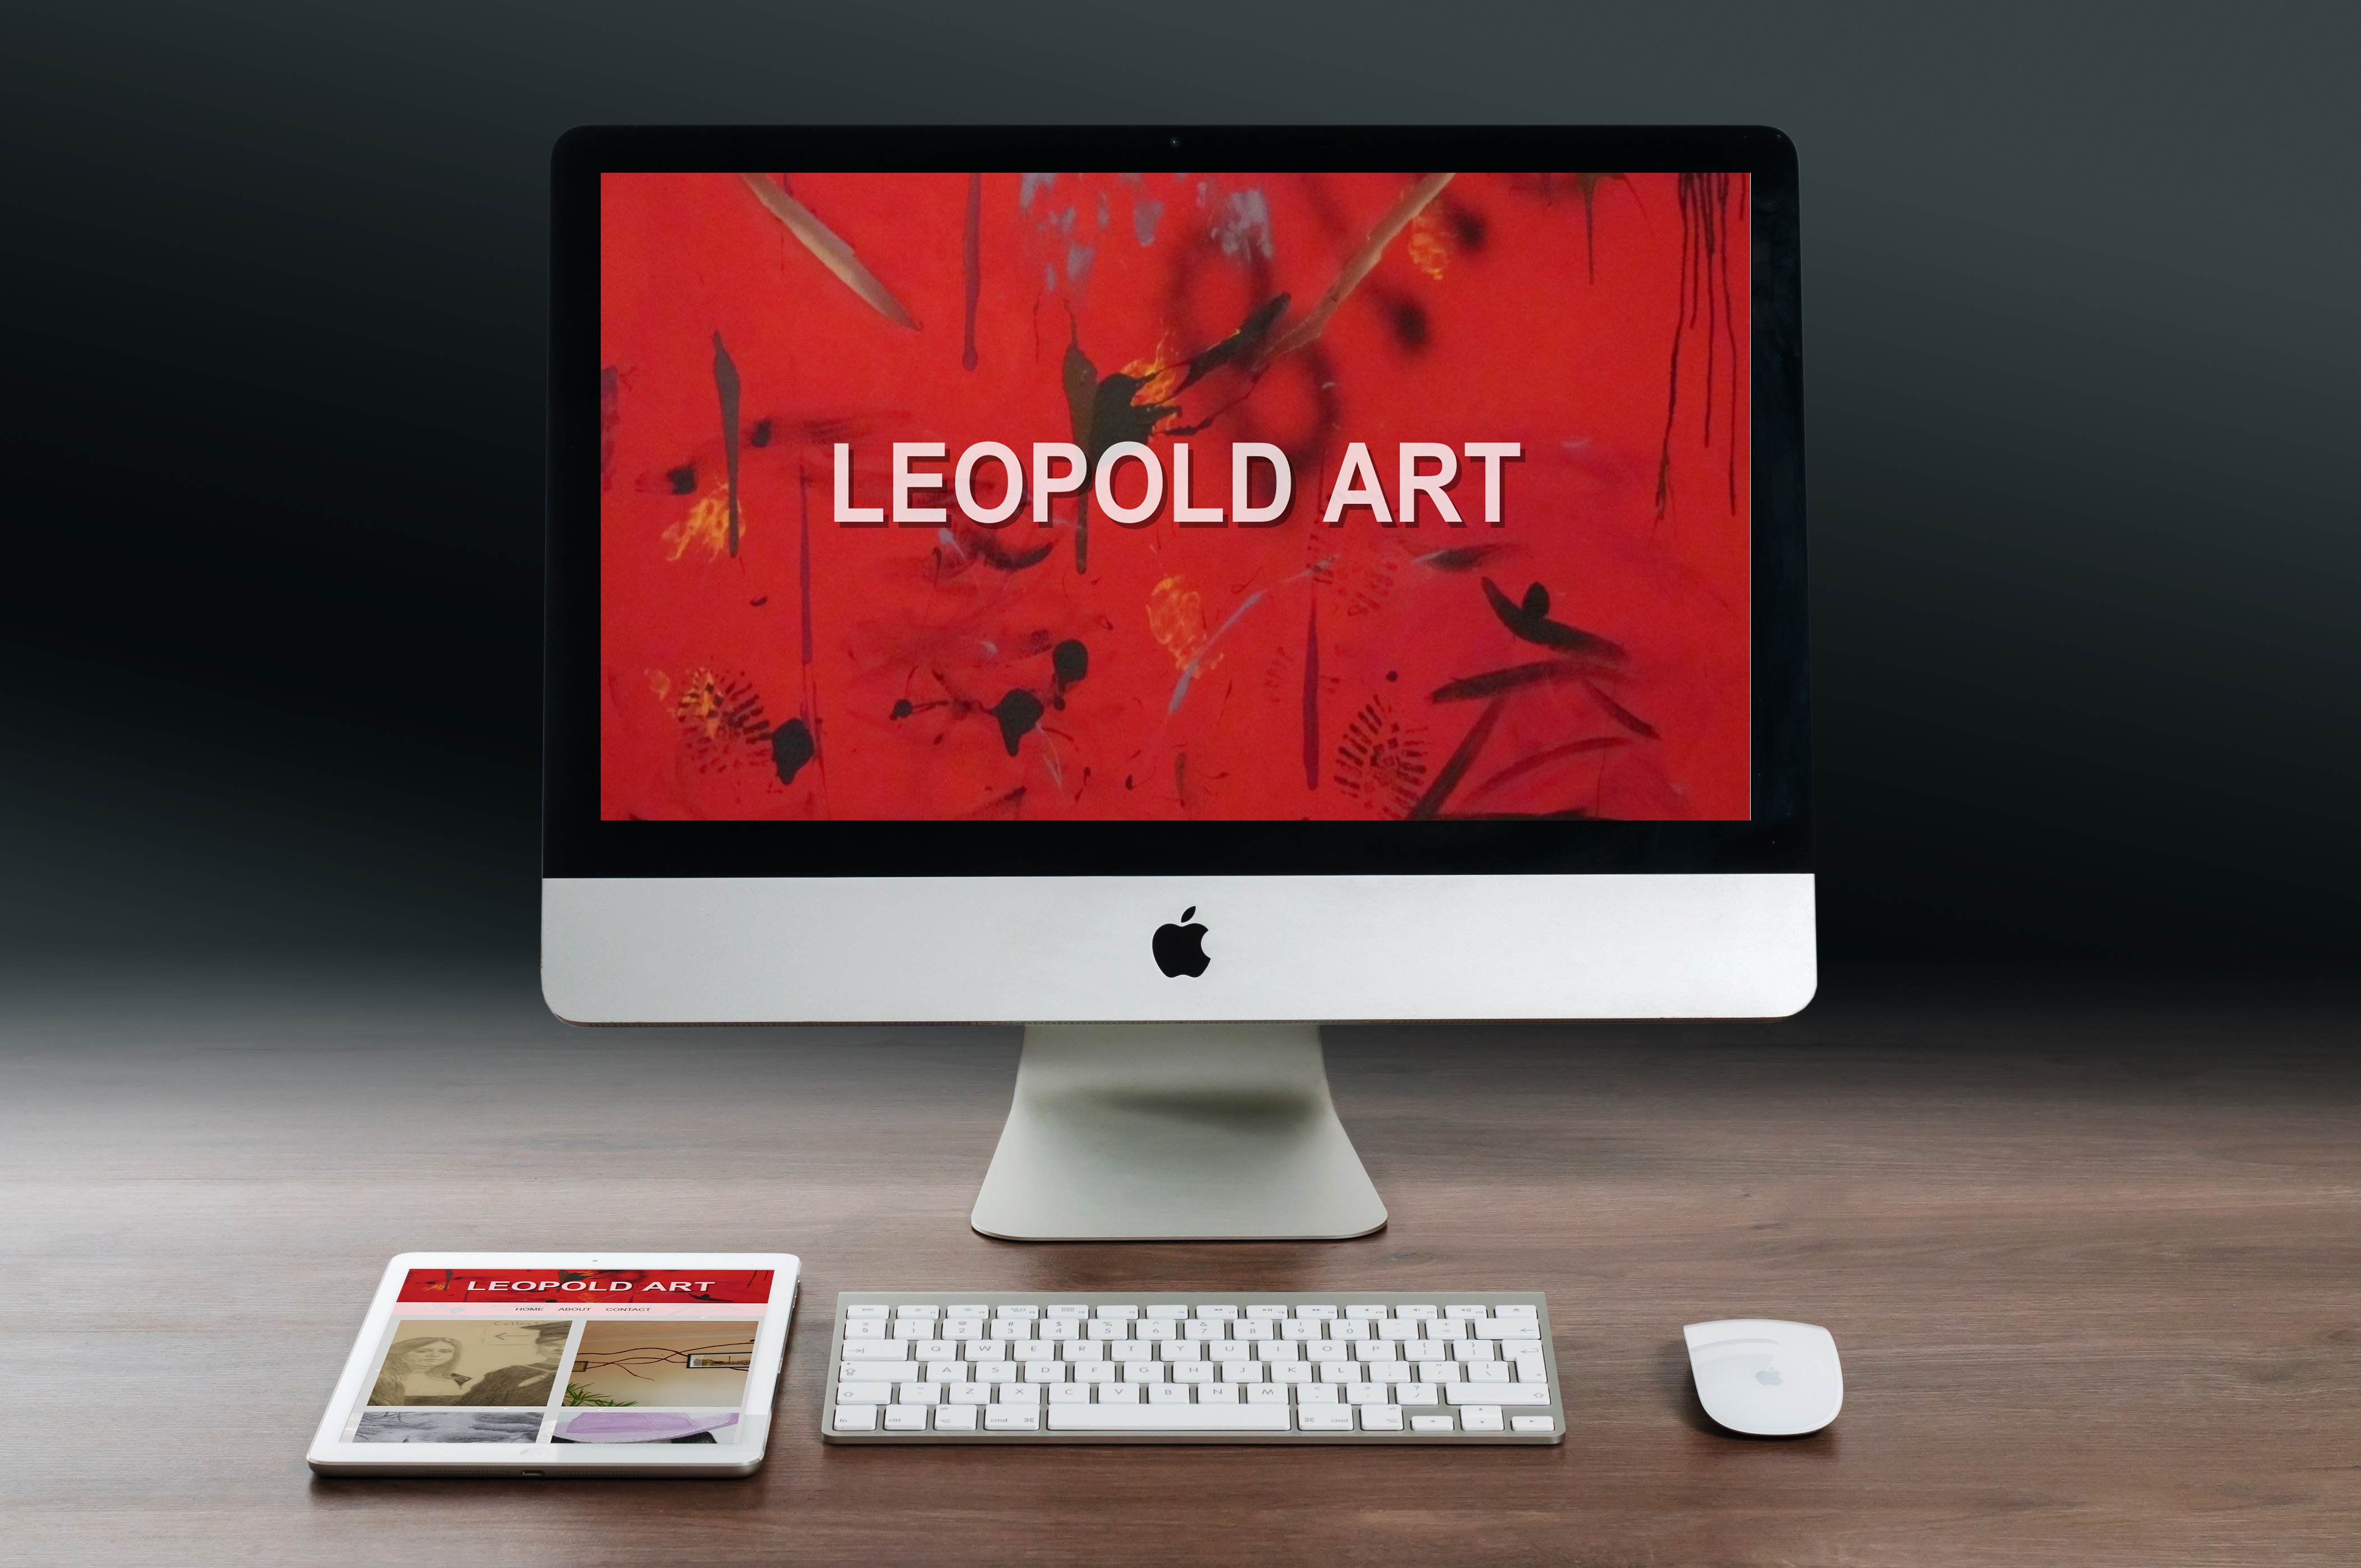 A Mac and a tablet sitting on a wooden table each displaying the same website - leopoldart.net